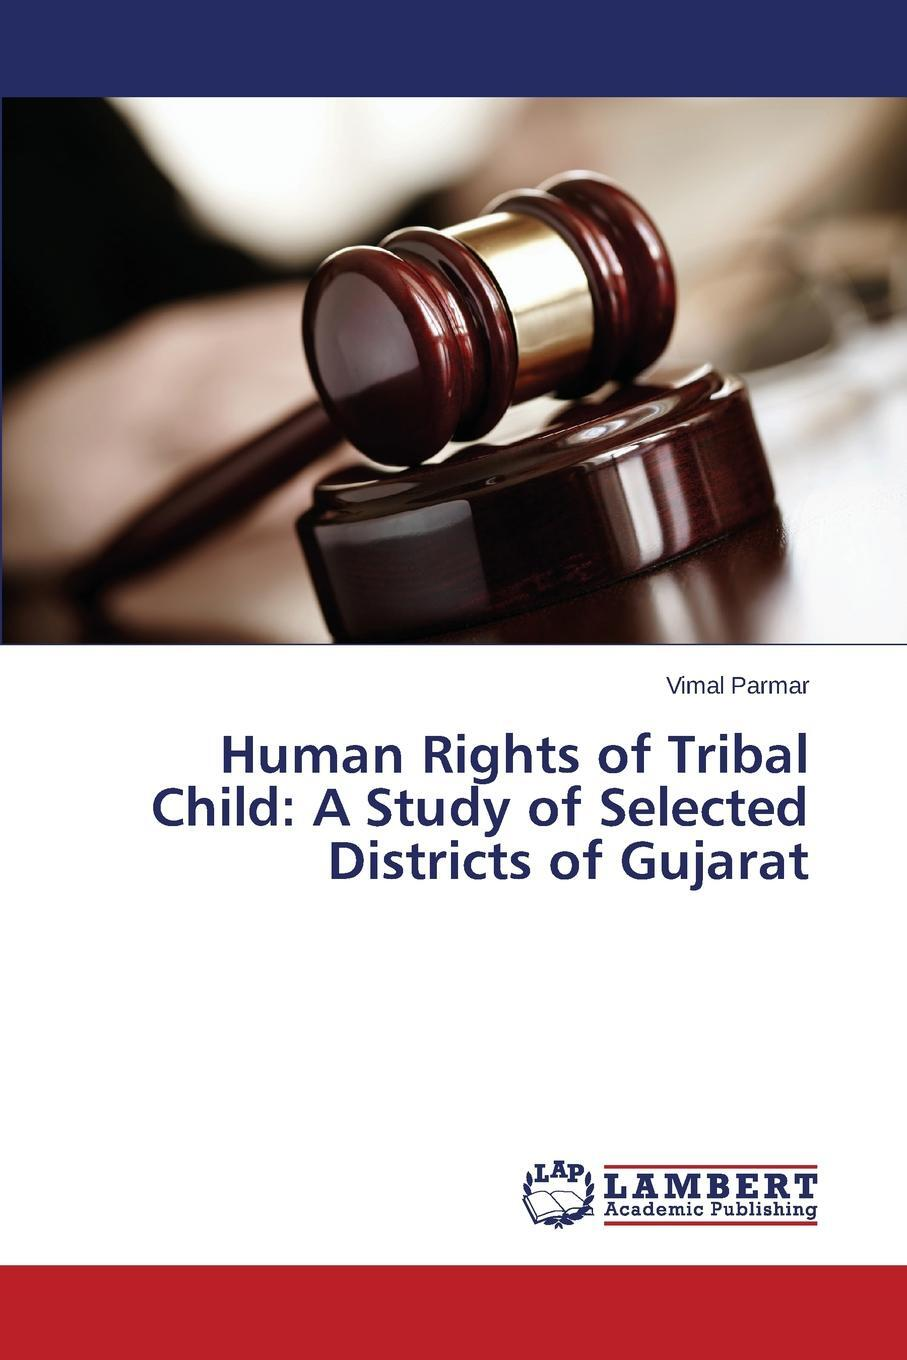 Human Rights of Tribal Child. A Study of Selected Districts of Gujarat. Parmar Vimal